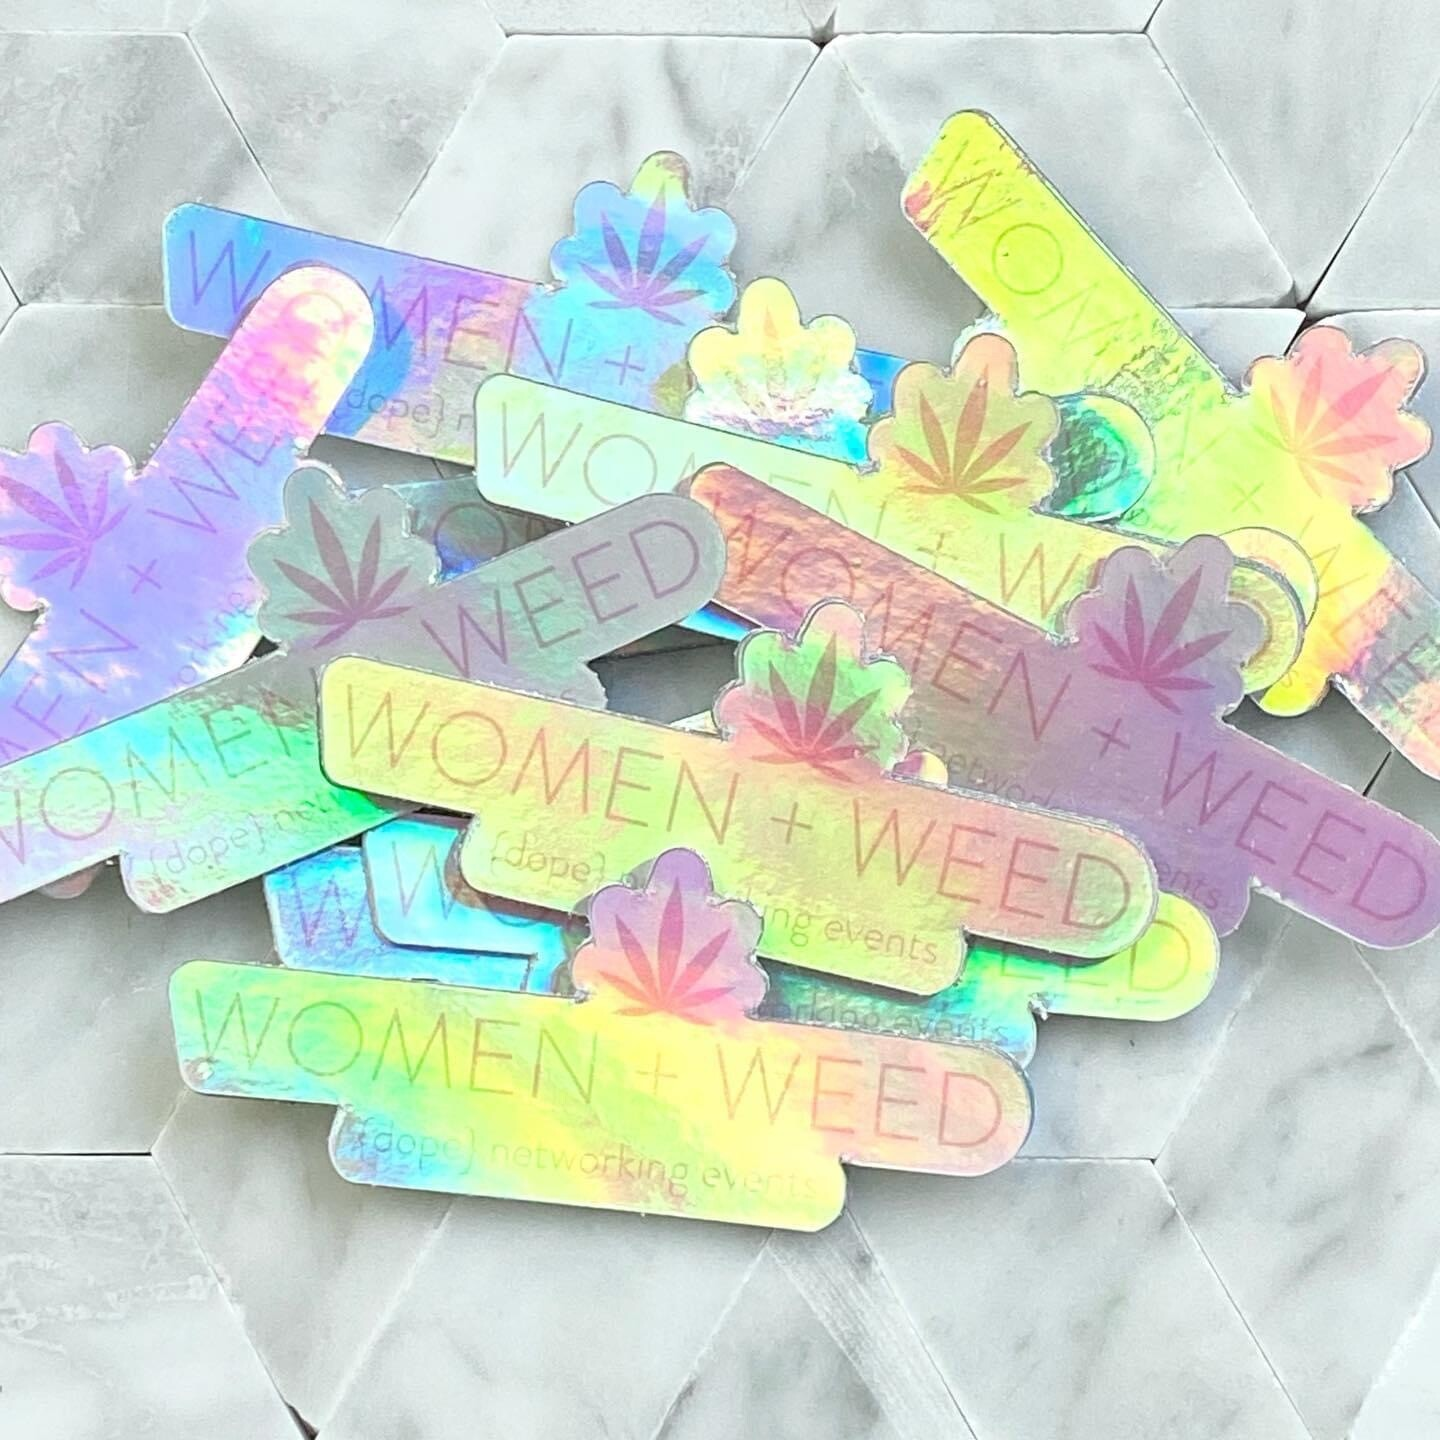 Women + Weed Hologram Stickers